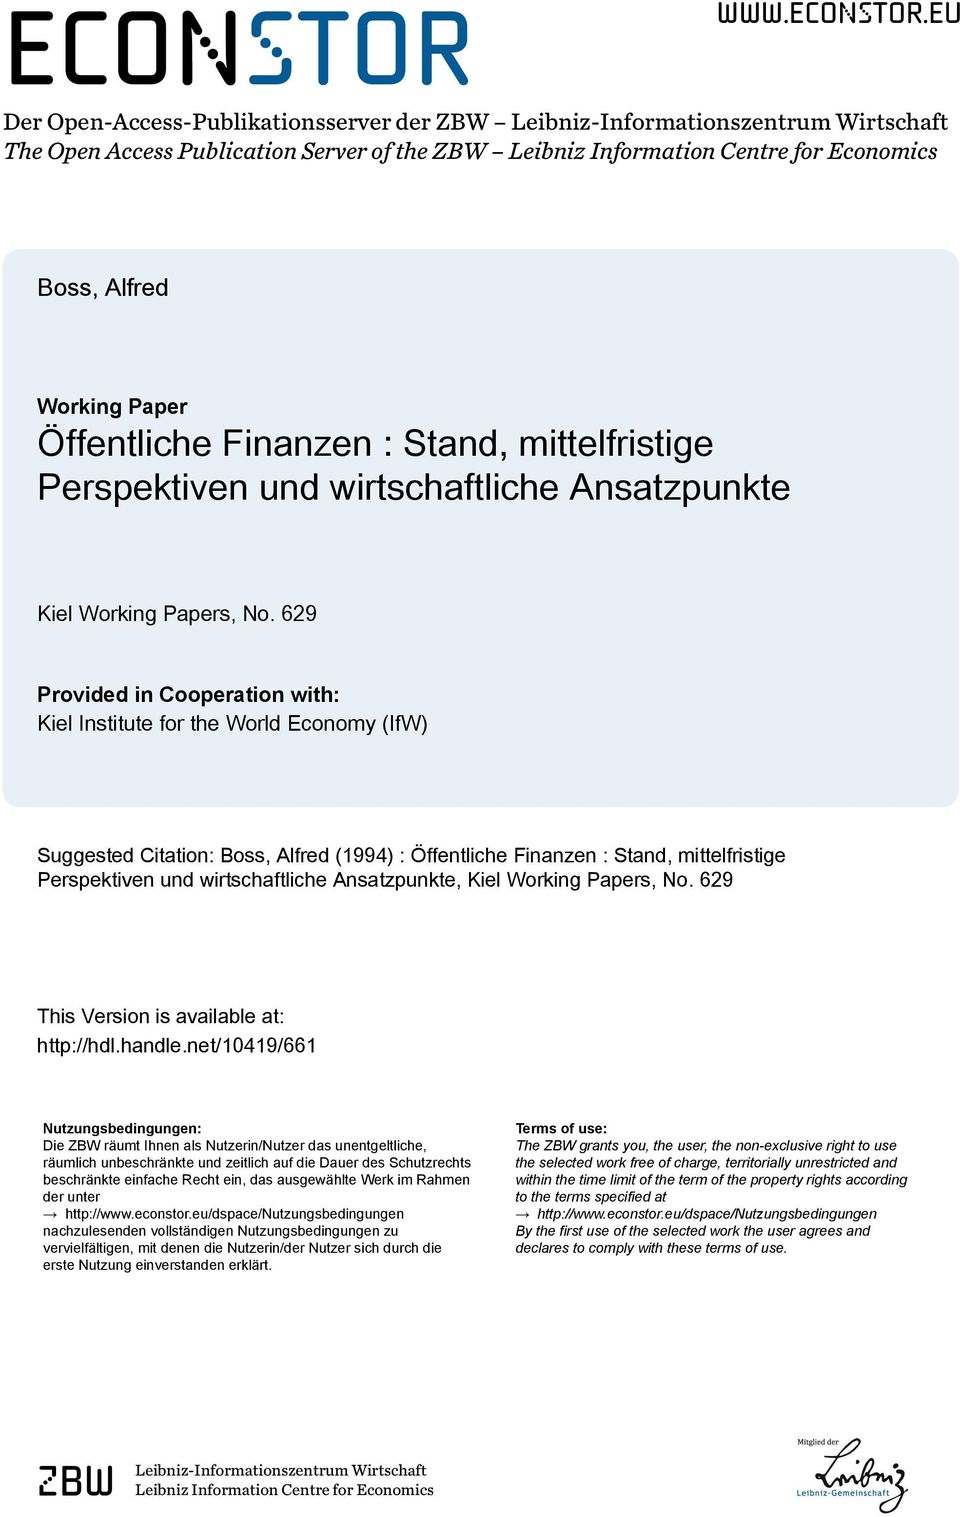 eu Der Open-Access-Publikationsserver der ZBW Leibniz-Informationszentrum Wirtschaft The Open Access Publication Server of the ZBW Leibniz Information Centre for Economics Boss, Alfred Working Paper